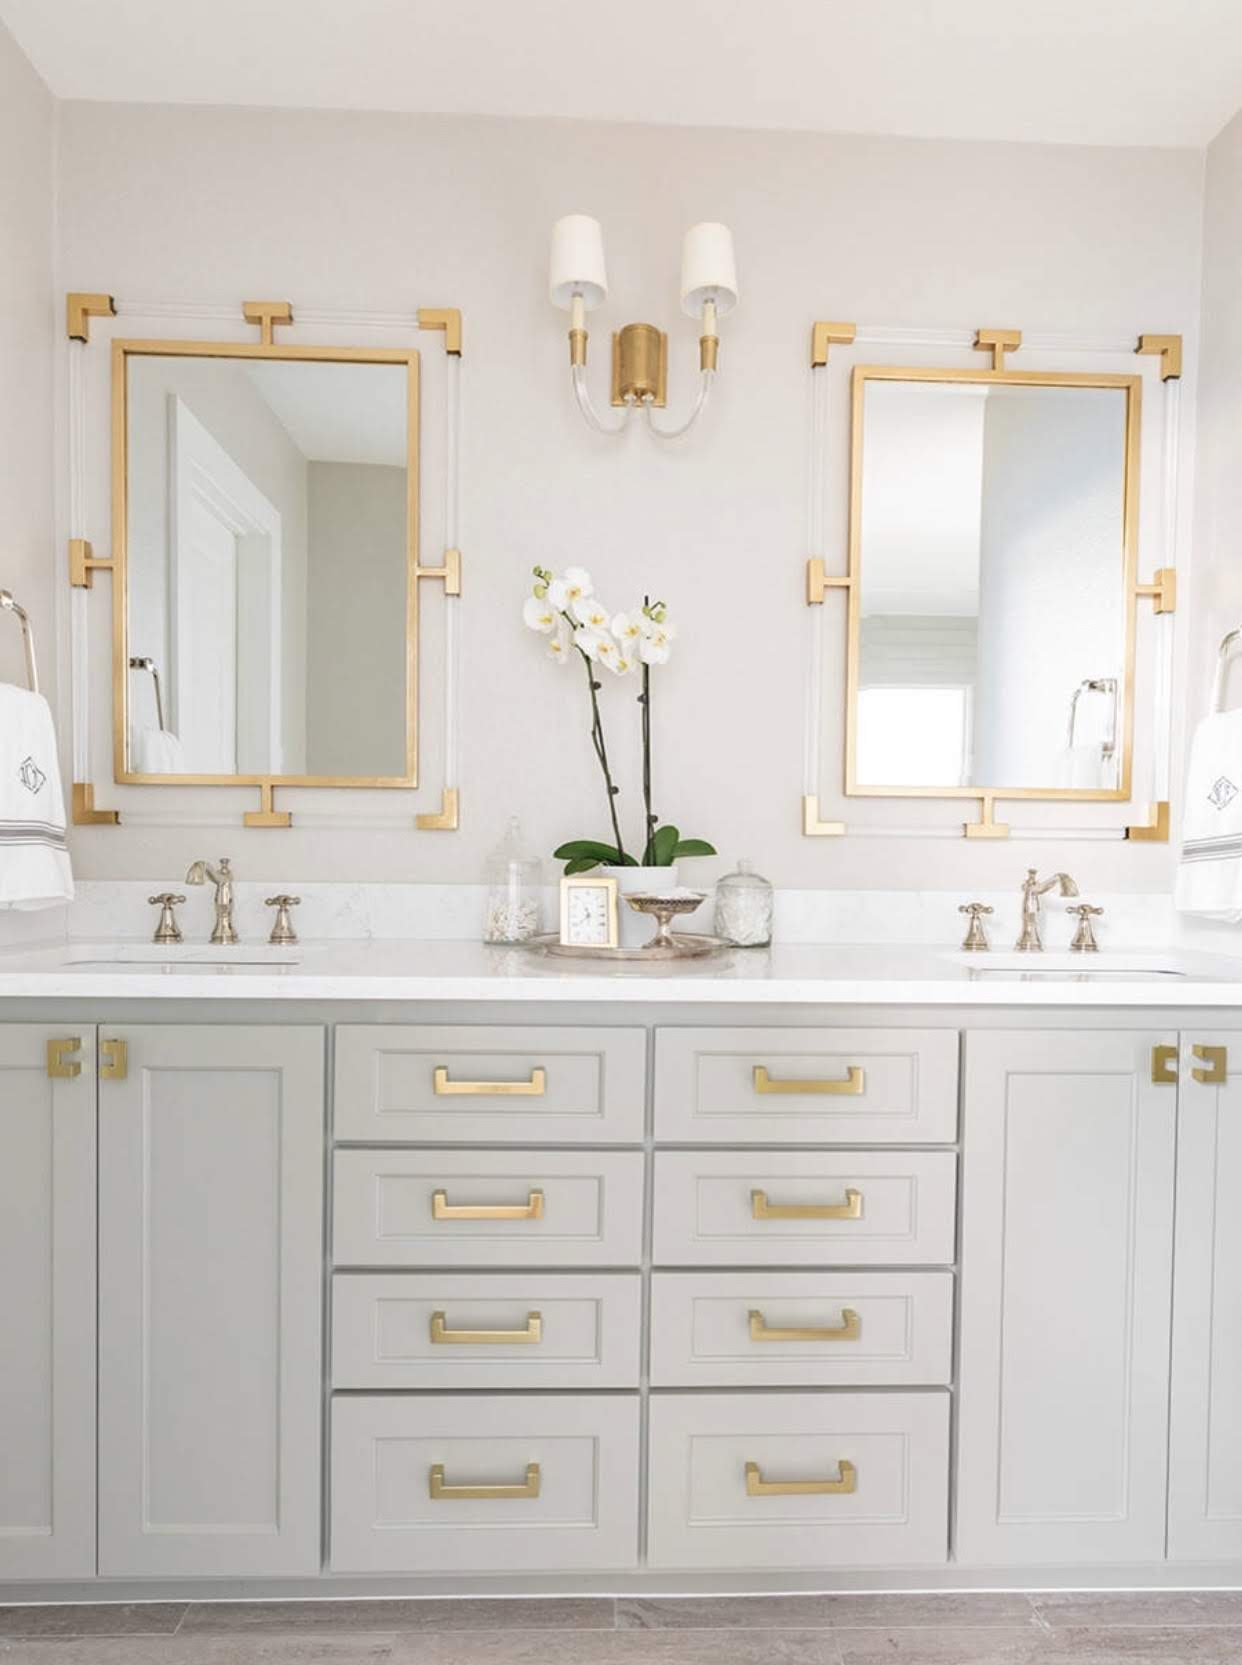 Modern white shaker style bathroom vanity with gold fixtures